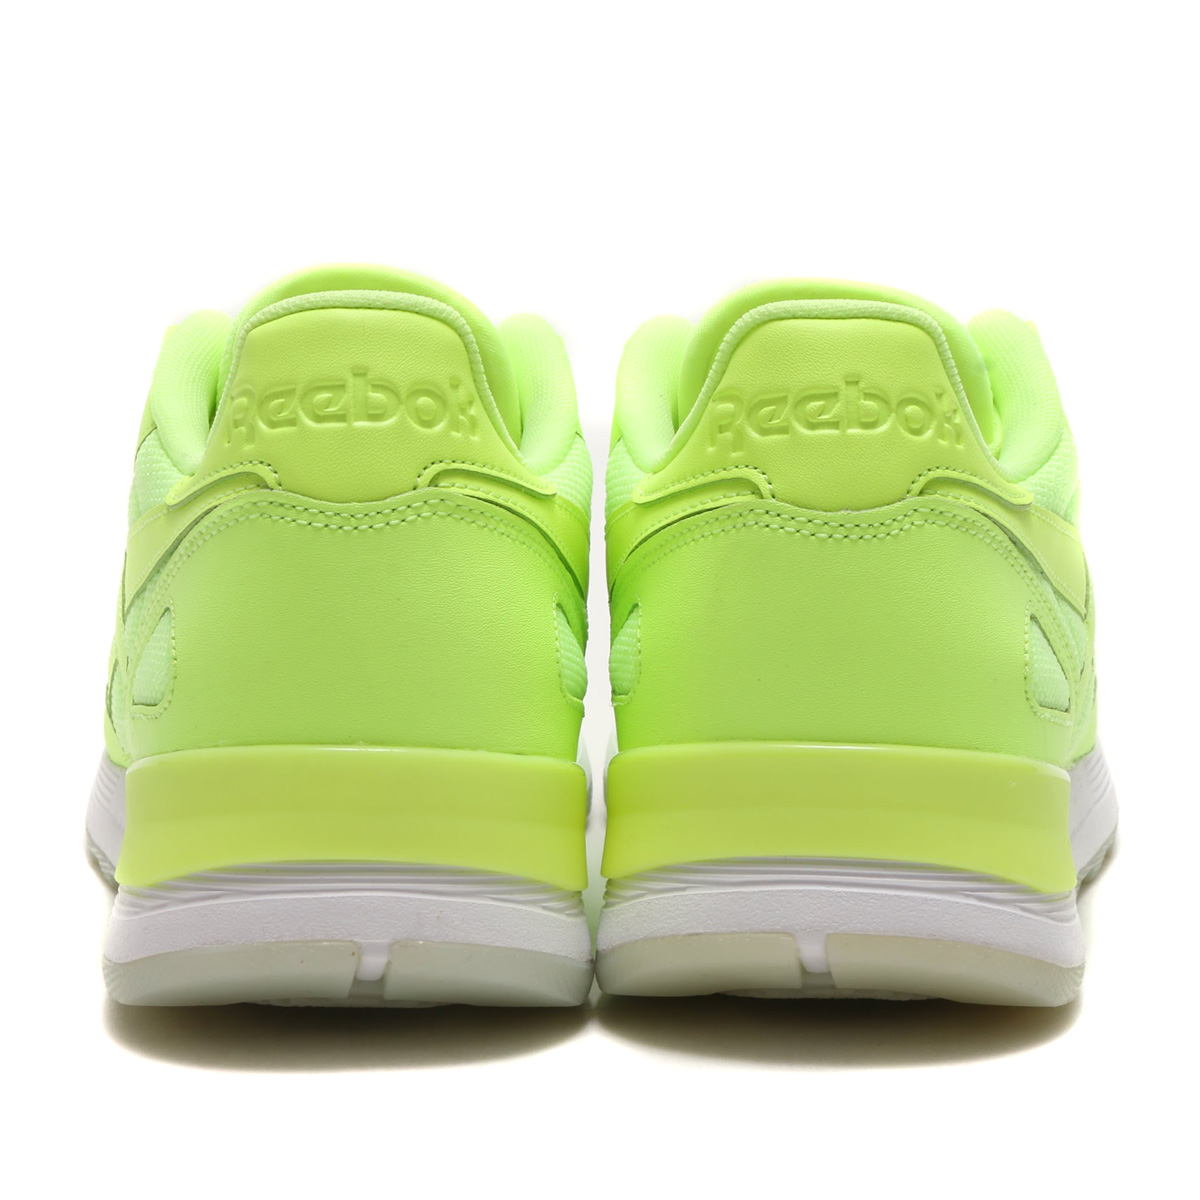 ... ReebokCLLEATHER2.0GID(リーボックCLレザー2.0GID)ELECTRICL WHITE メンズレディース ... a754267fa9